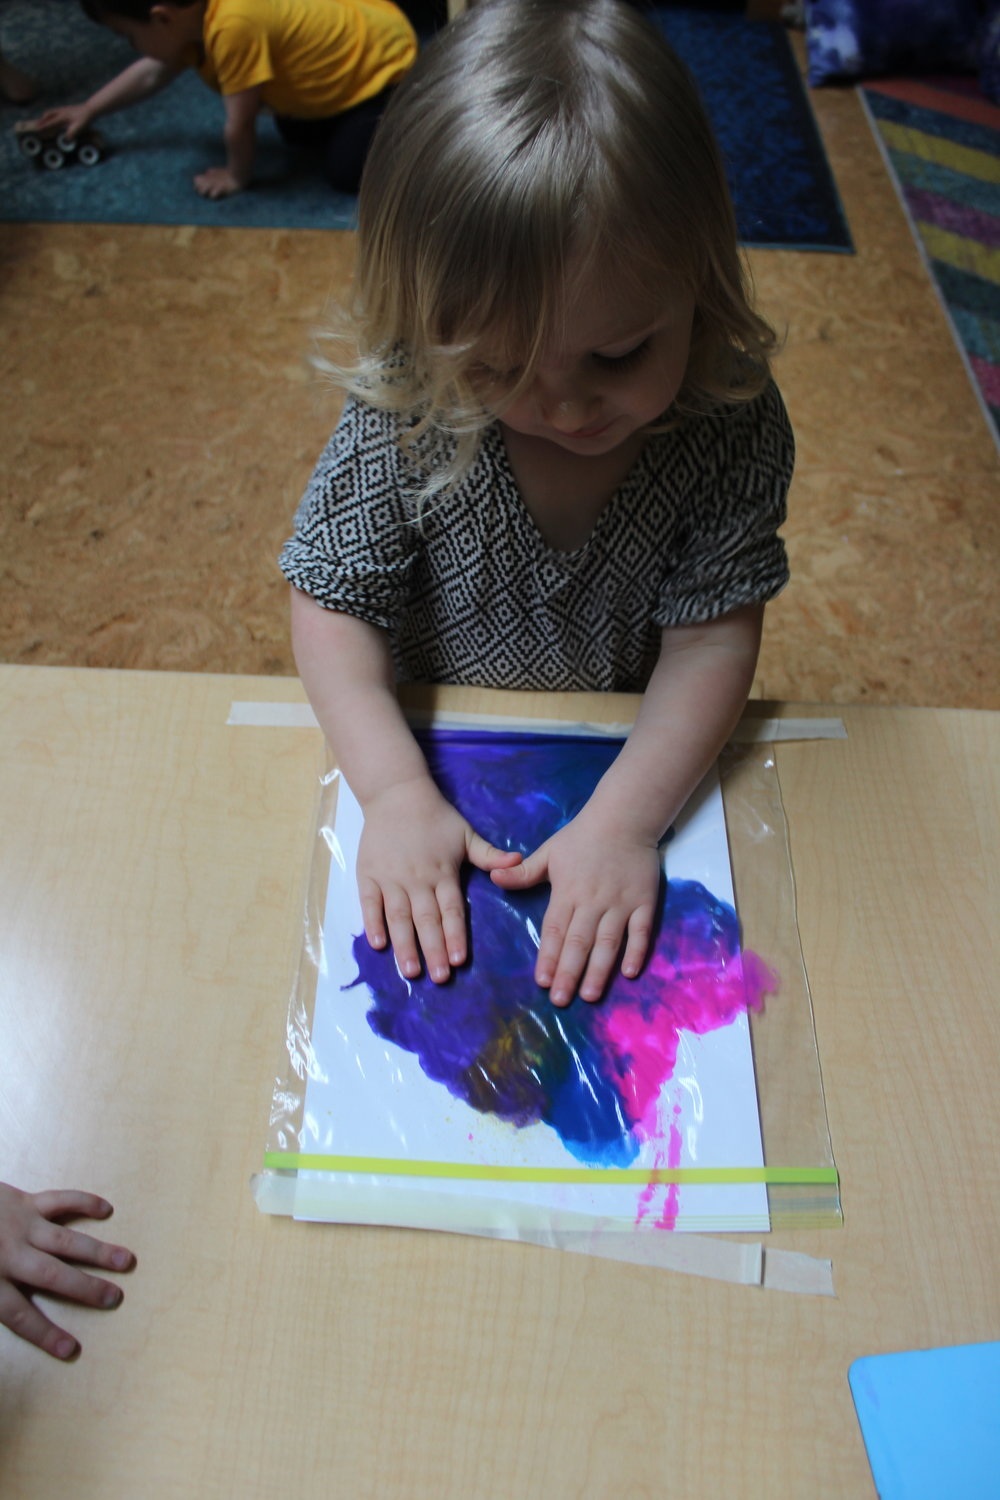 Ziploc painting is a color, sensory, imagination, and fine motor skills all in one fun activity.   Fine motor skills are those that require the ability to use and coordinate small muscle groups.   Giving children opportunities to play with different types of textures and objects helps them to build new ways of talking about the world and building language.  This type of sensory play is also calming for children. It helps regulate their internal discomfort, whether that discomfort is restlessness or some other type of agitation.